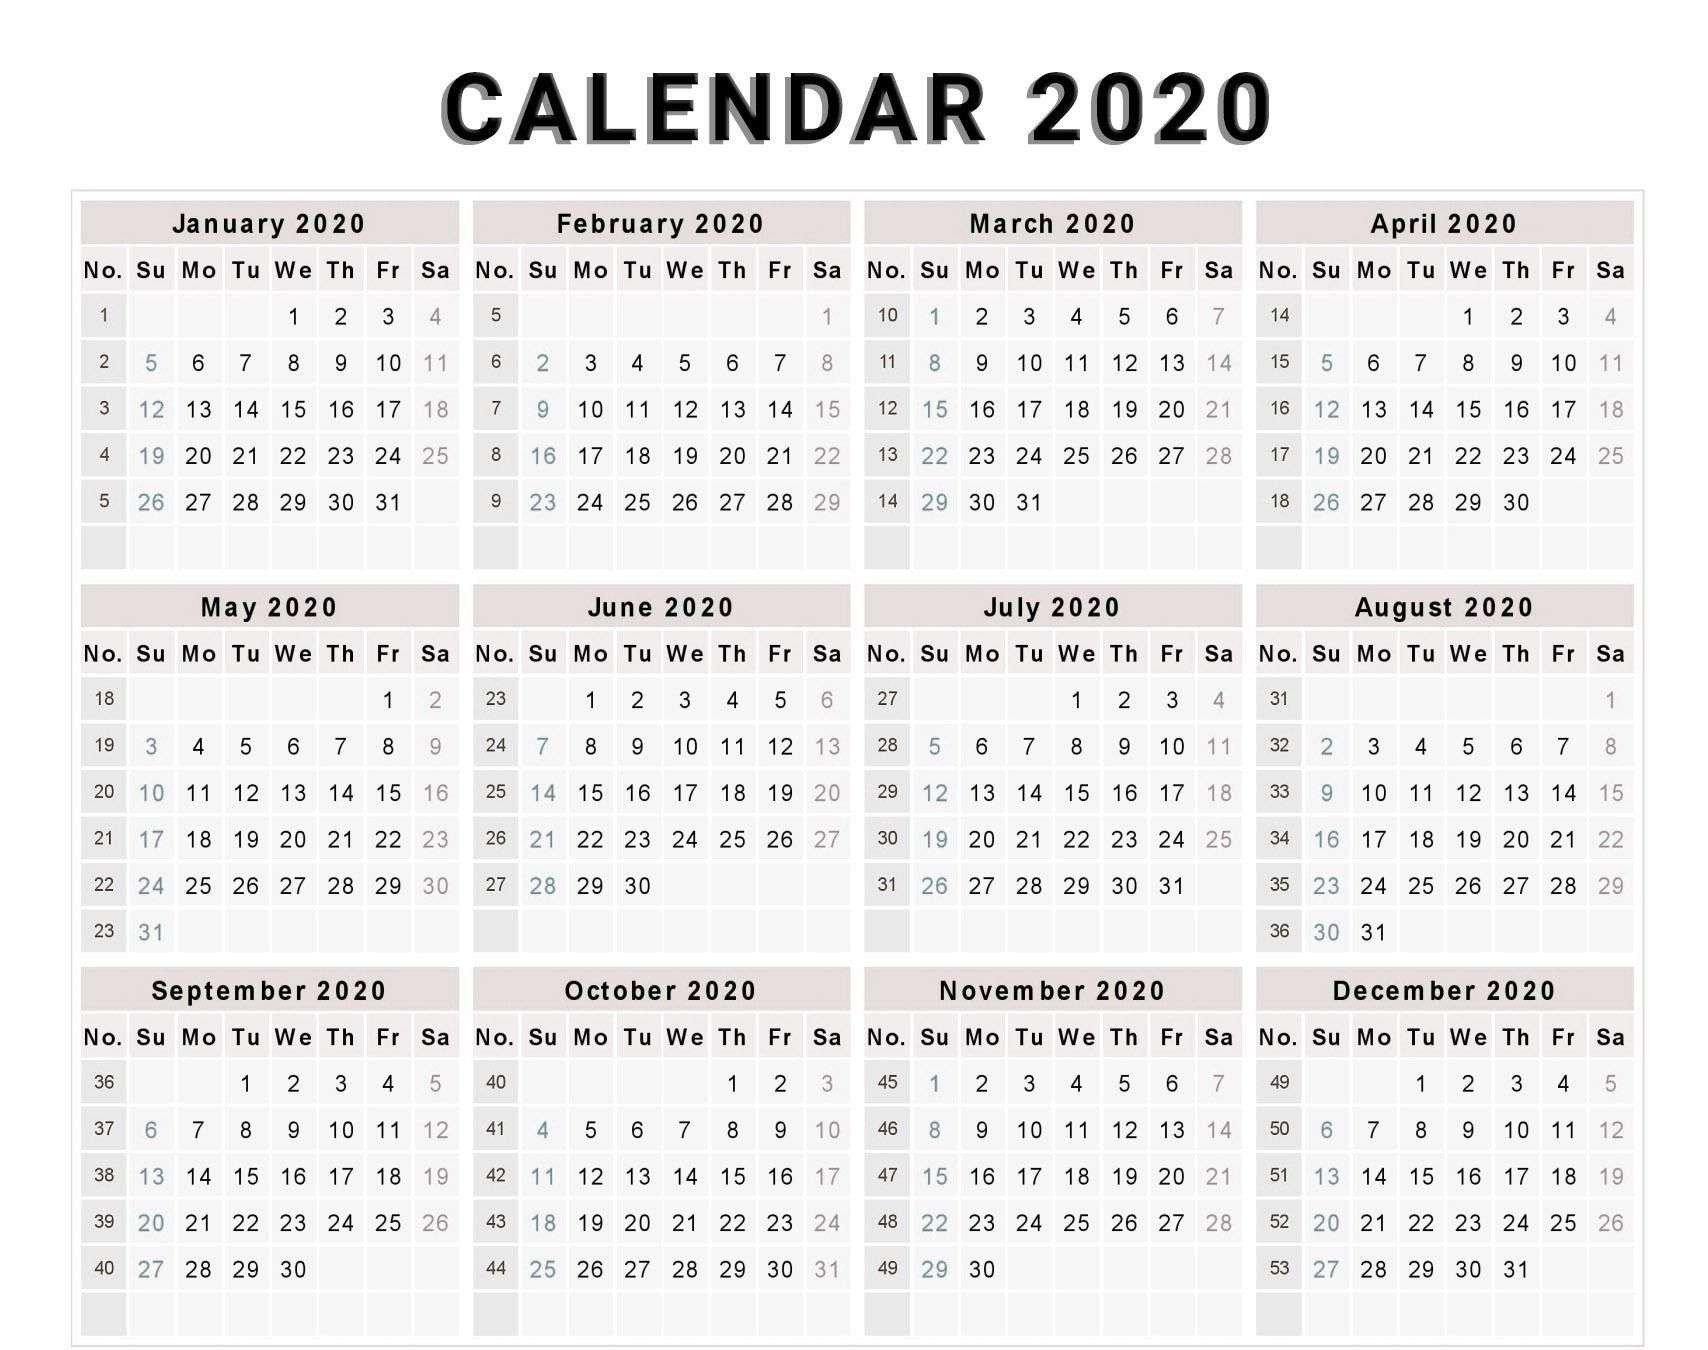 Calendar 2020 Free Template With Weeks | Calendar Template